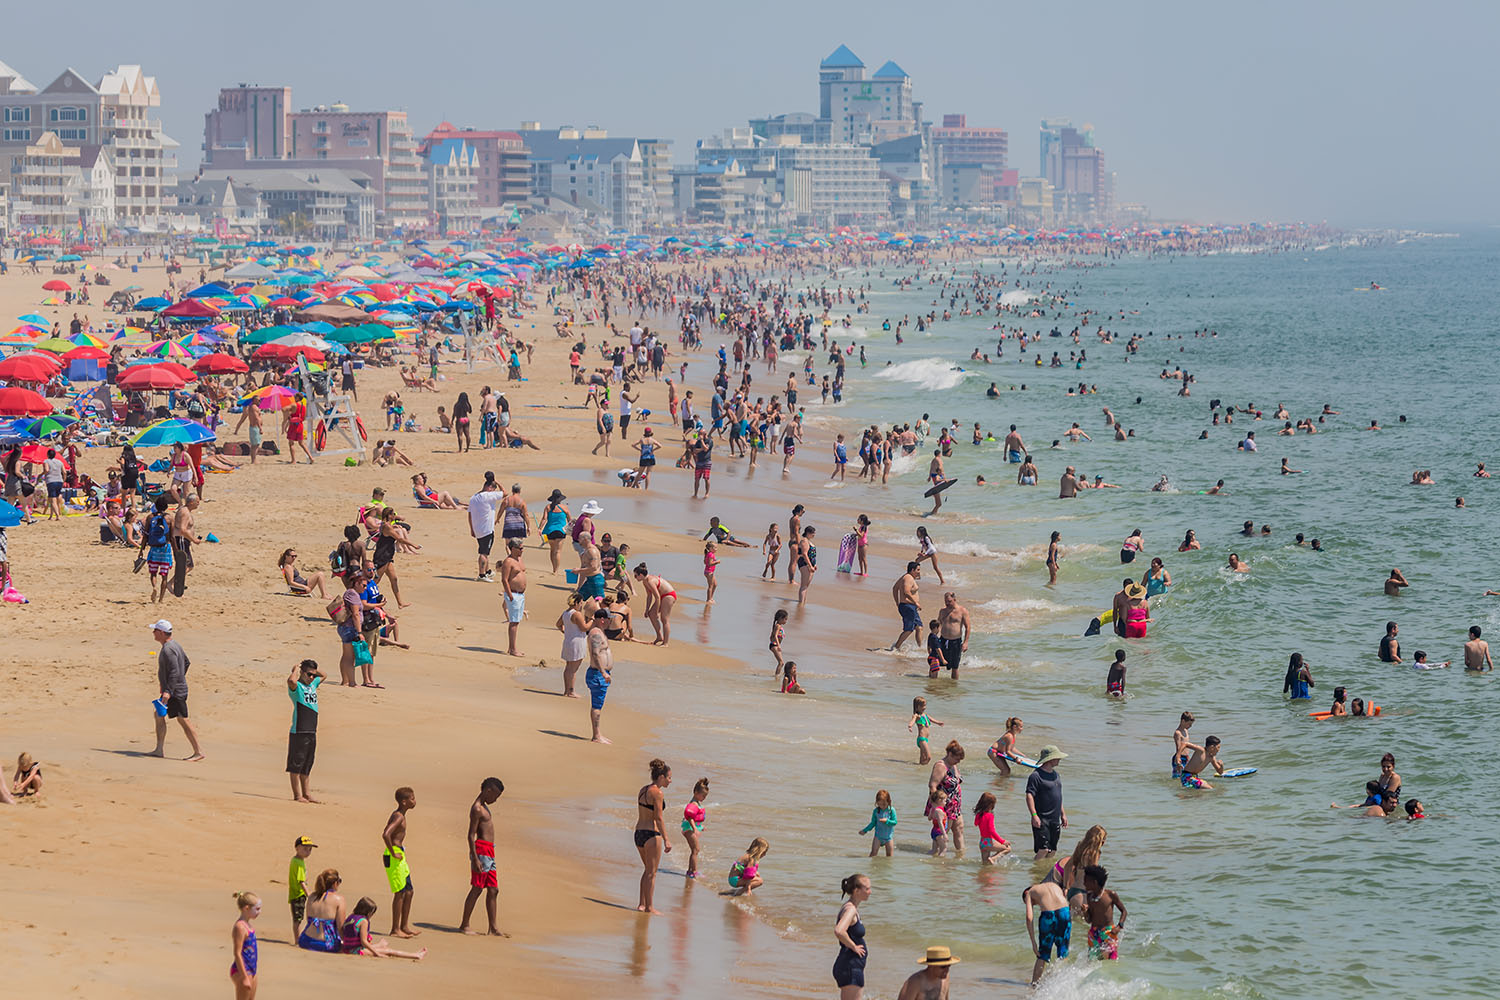 Ocean City Tourism Might Drop Fall Marketing Campaign Plans